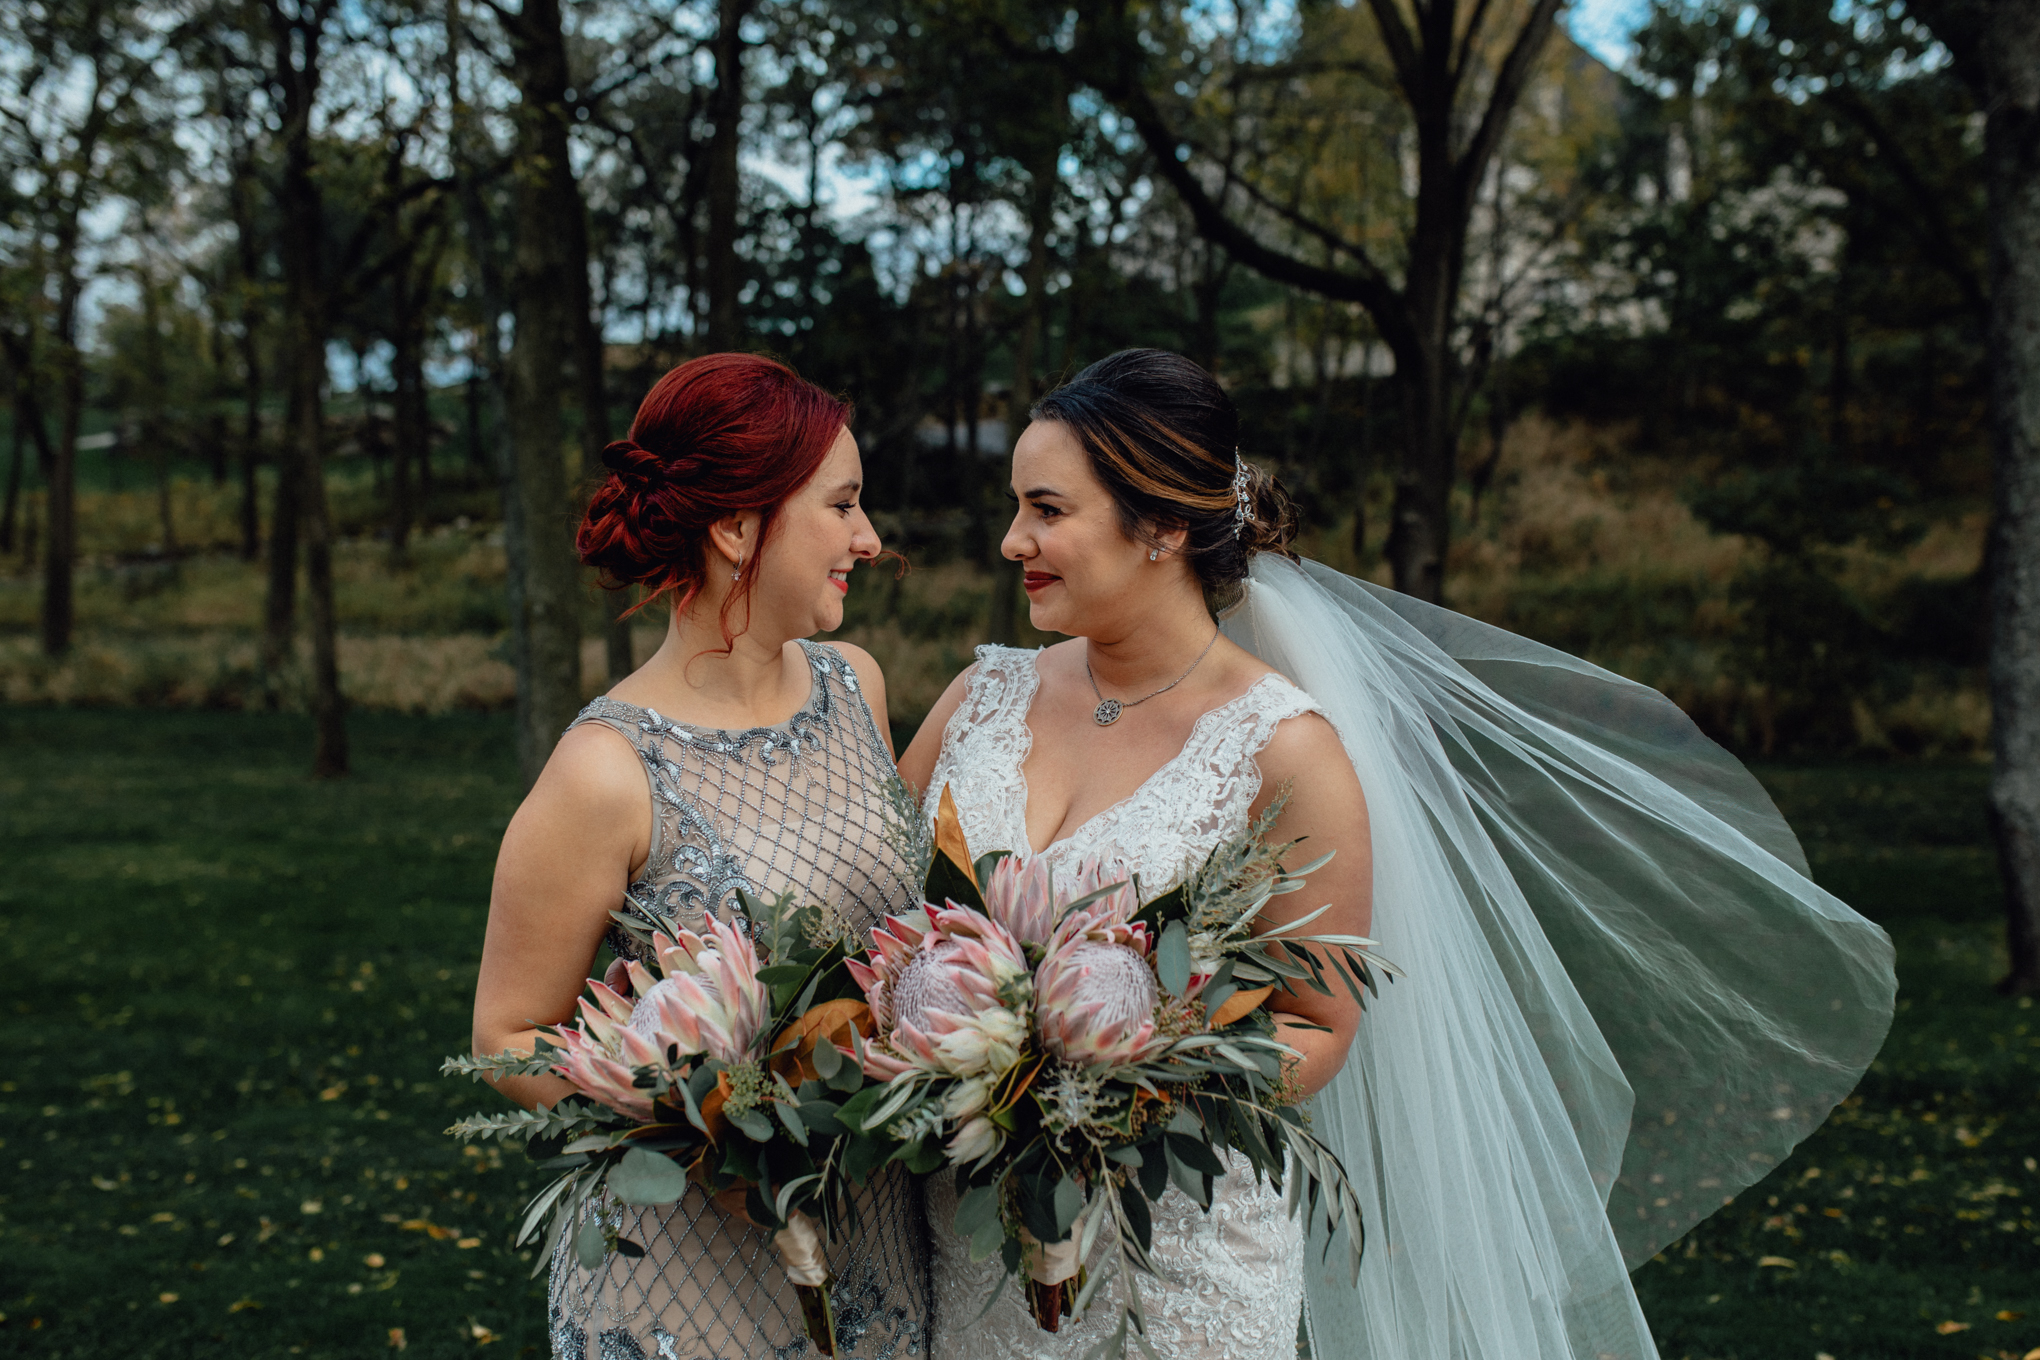 bridesmaid-and bride-in-grass.jpg